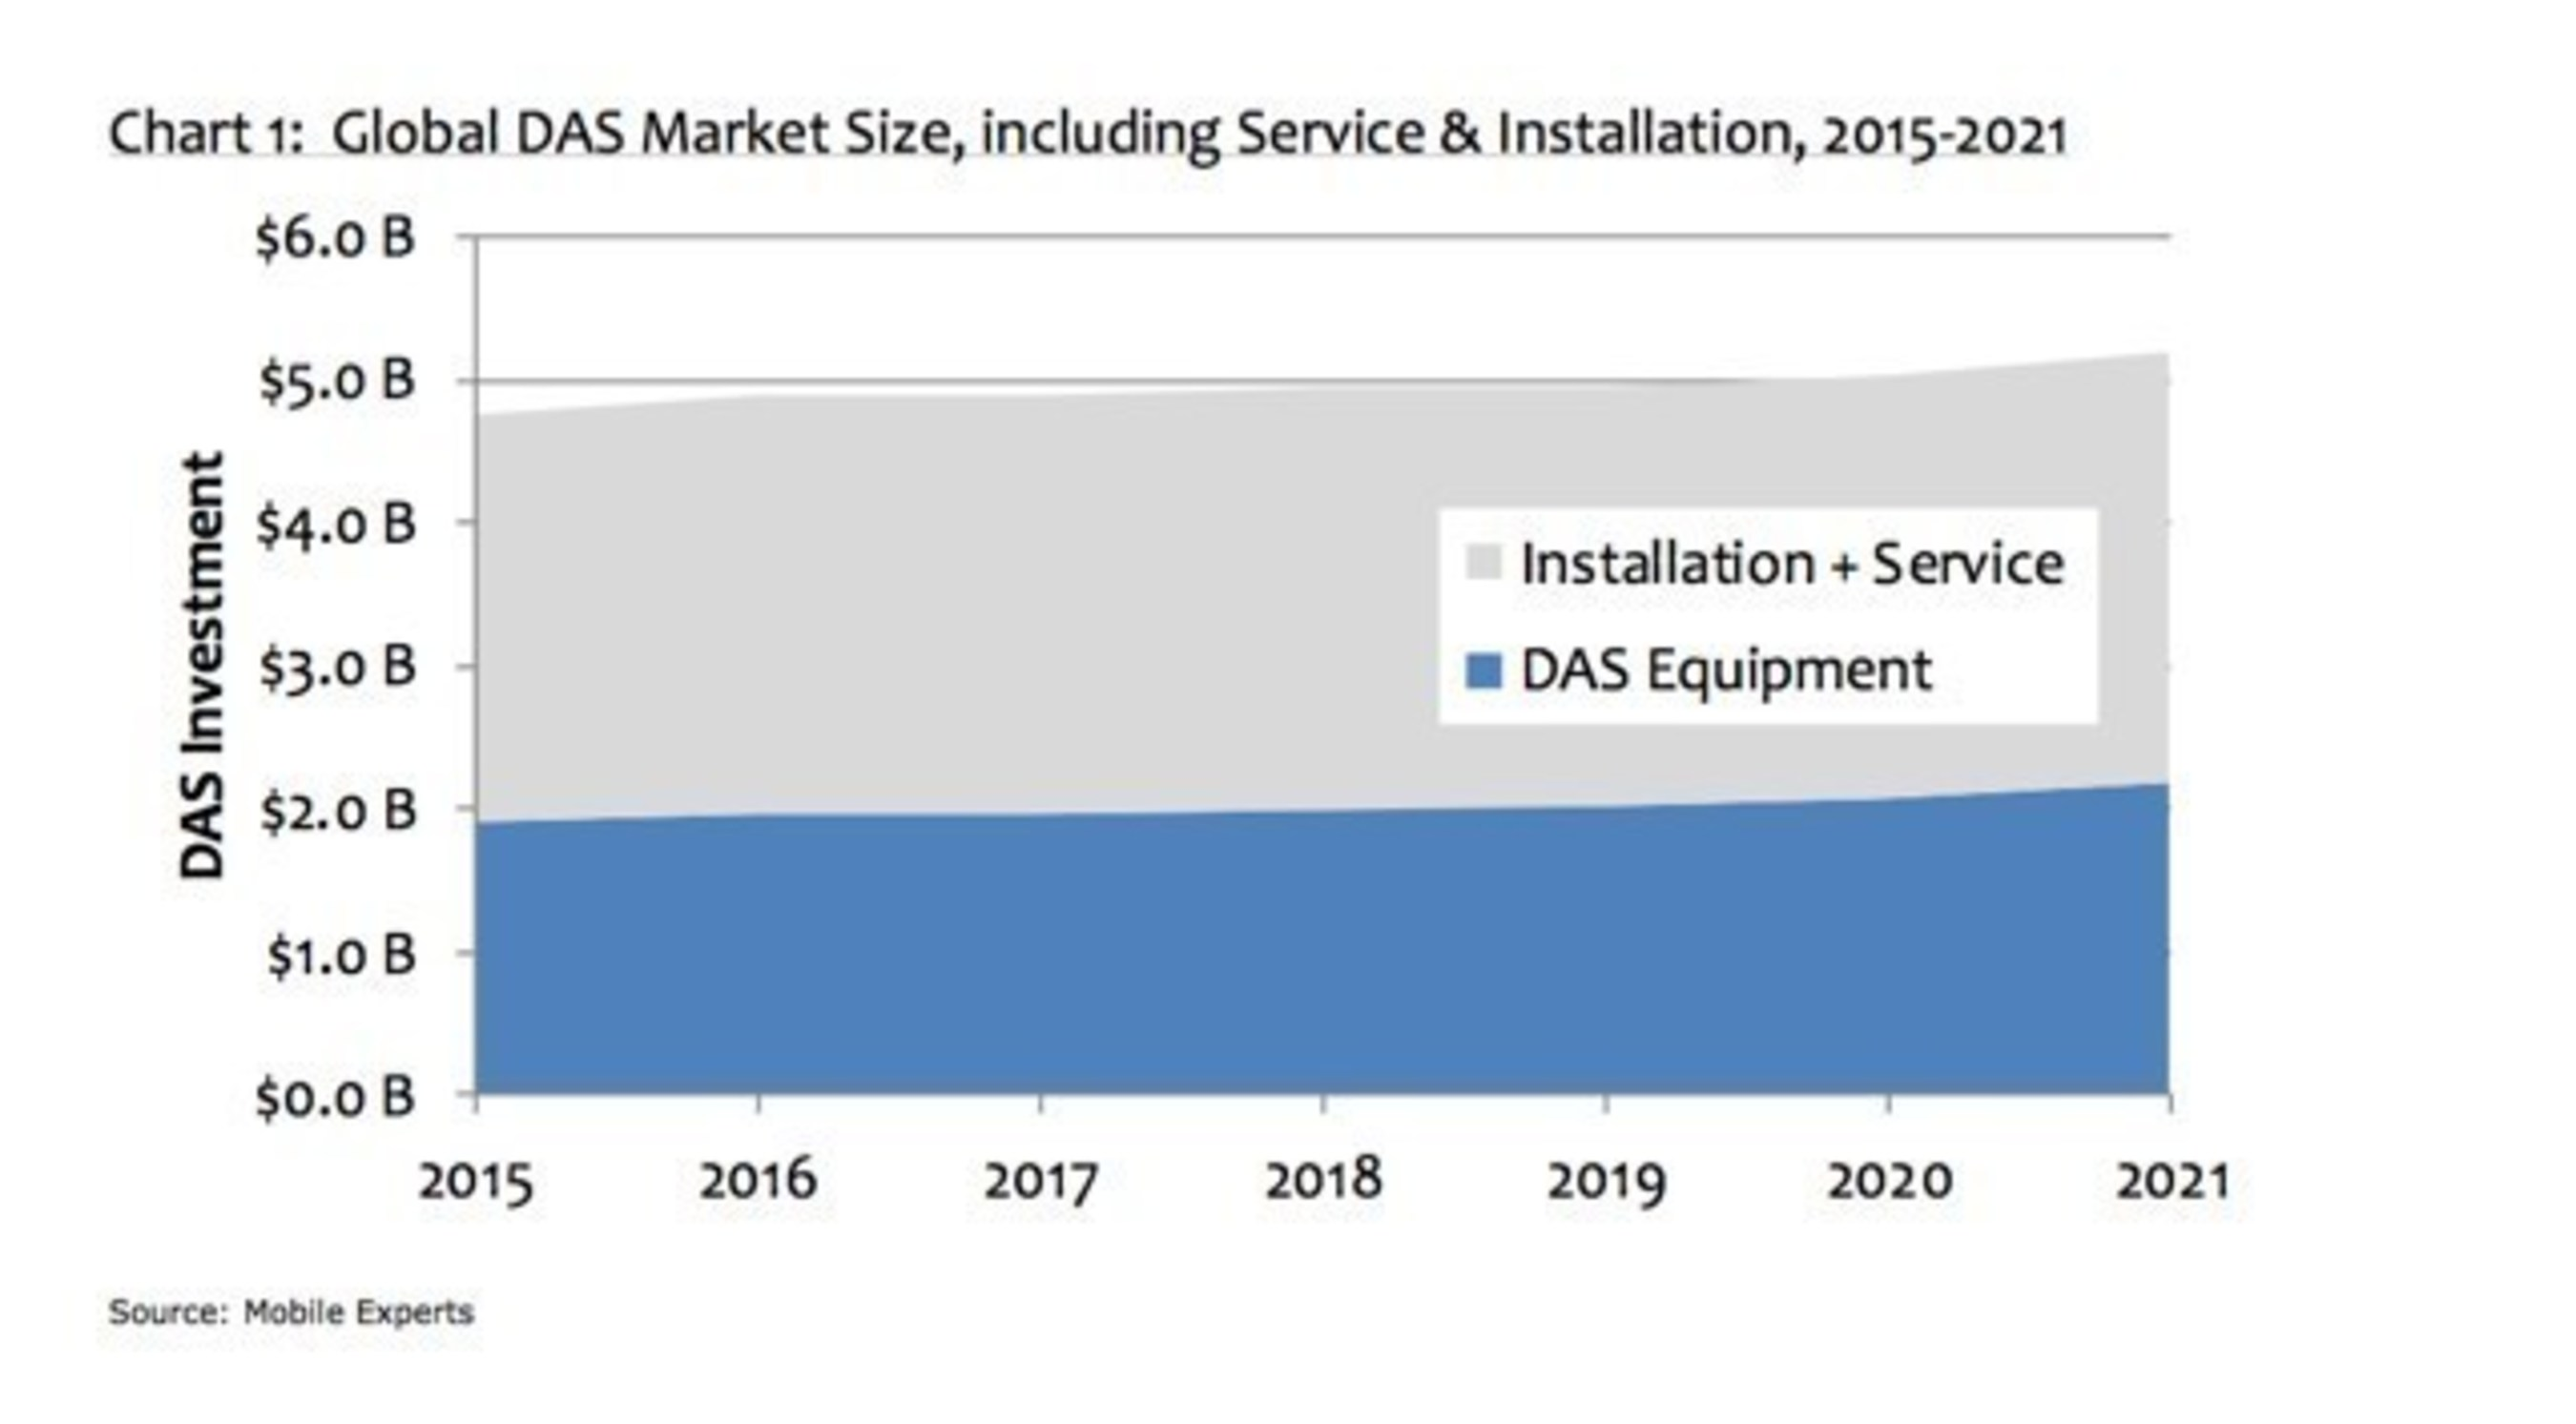 Pressure Builds From Pent-up Demand in DAS Enterprise Market